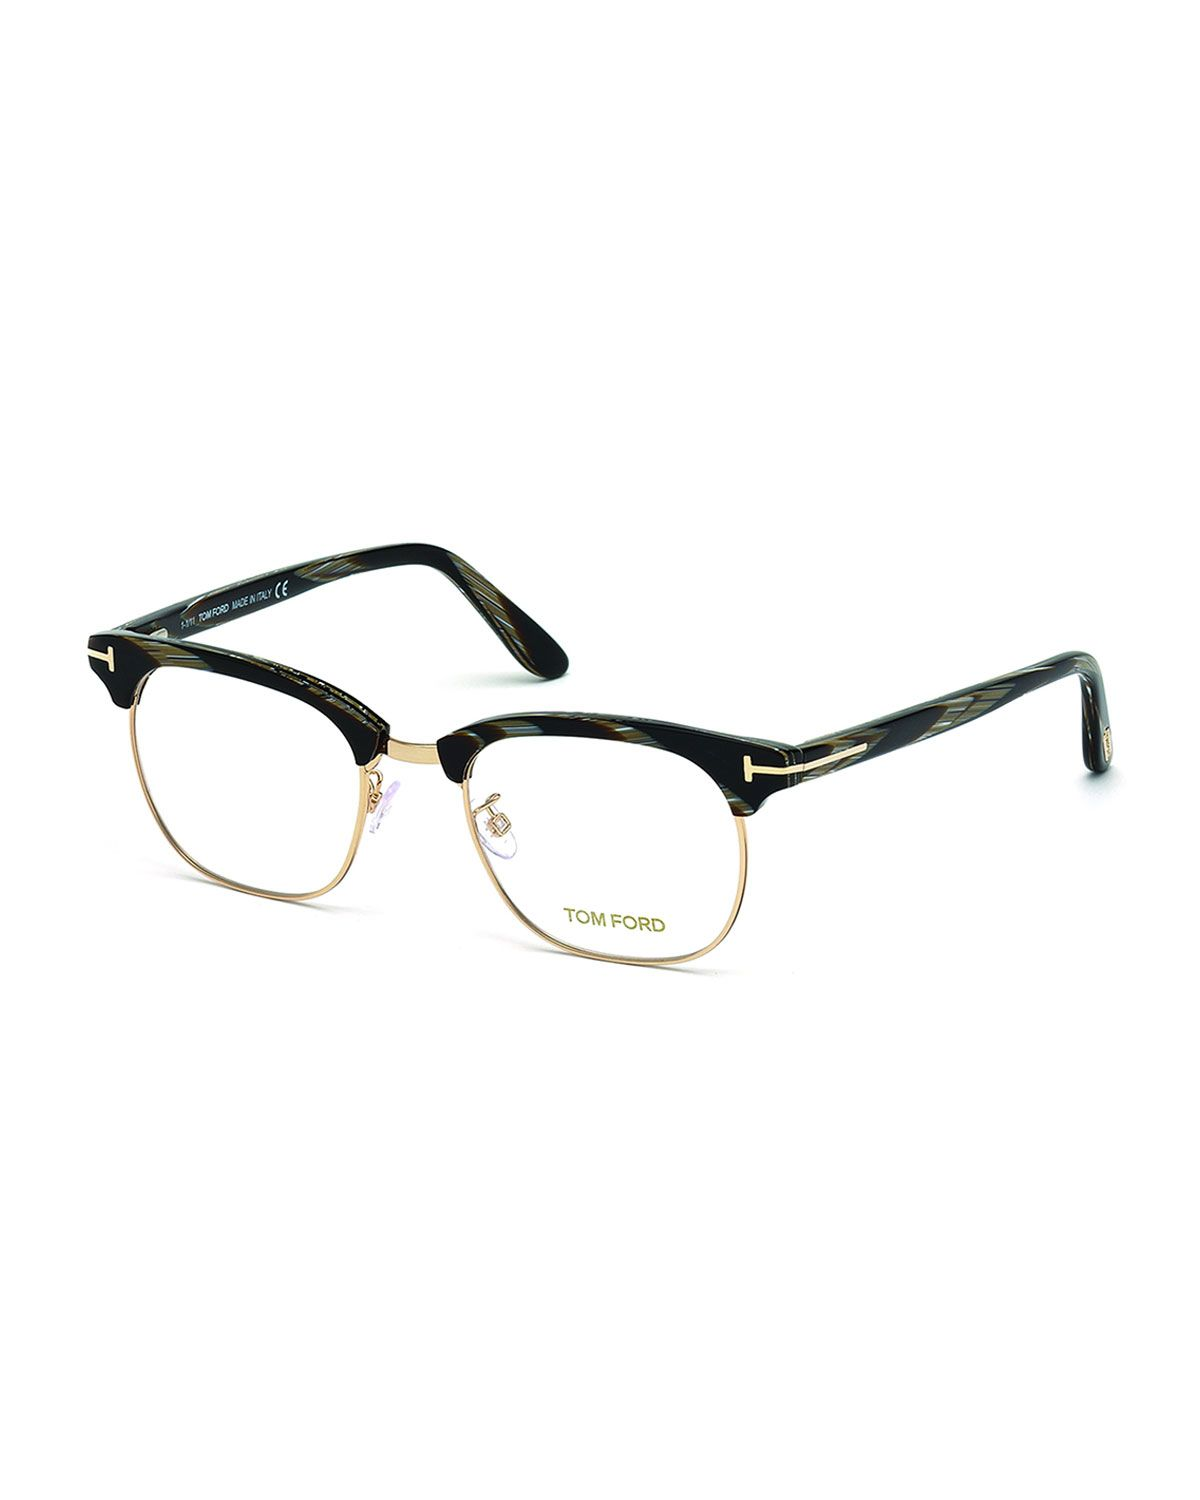 90d2e79806f7 These Tom Ford glasses almost make me wish that I had less than perfect  vision.